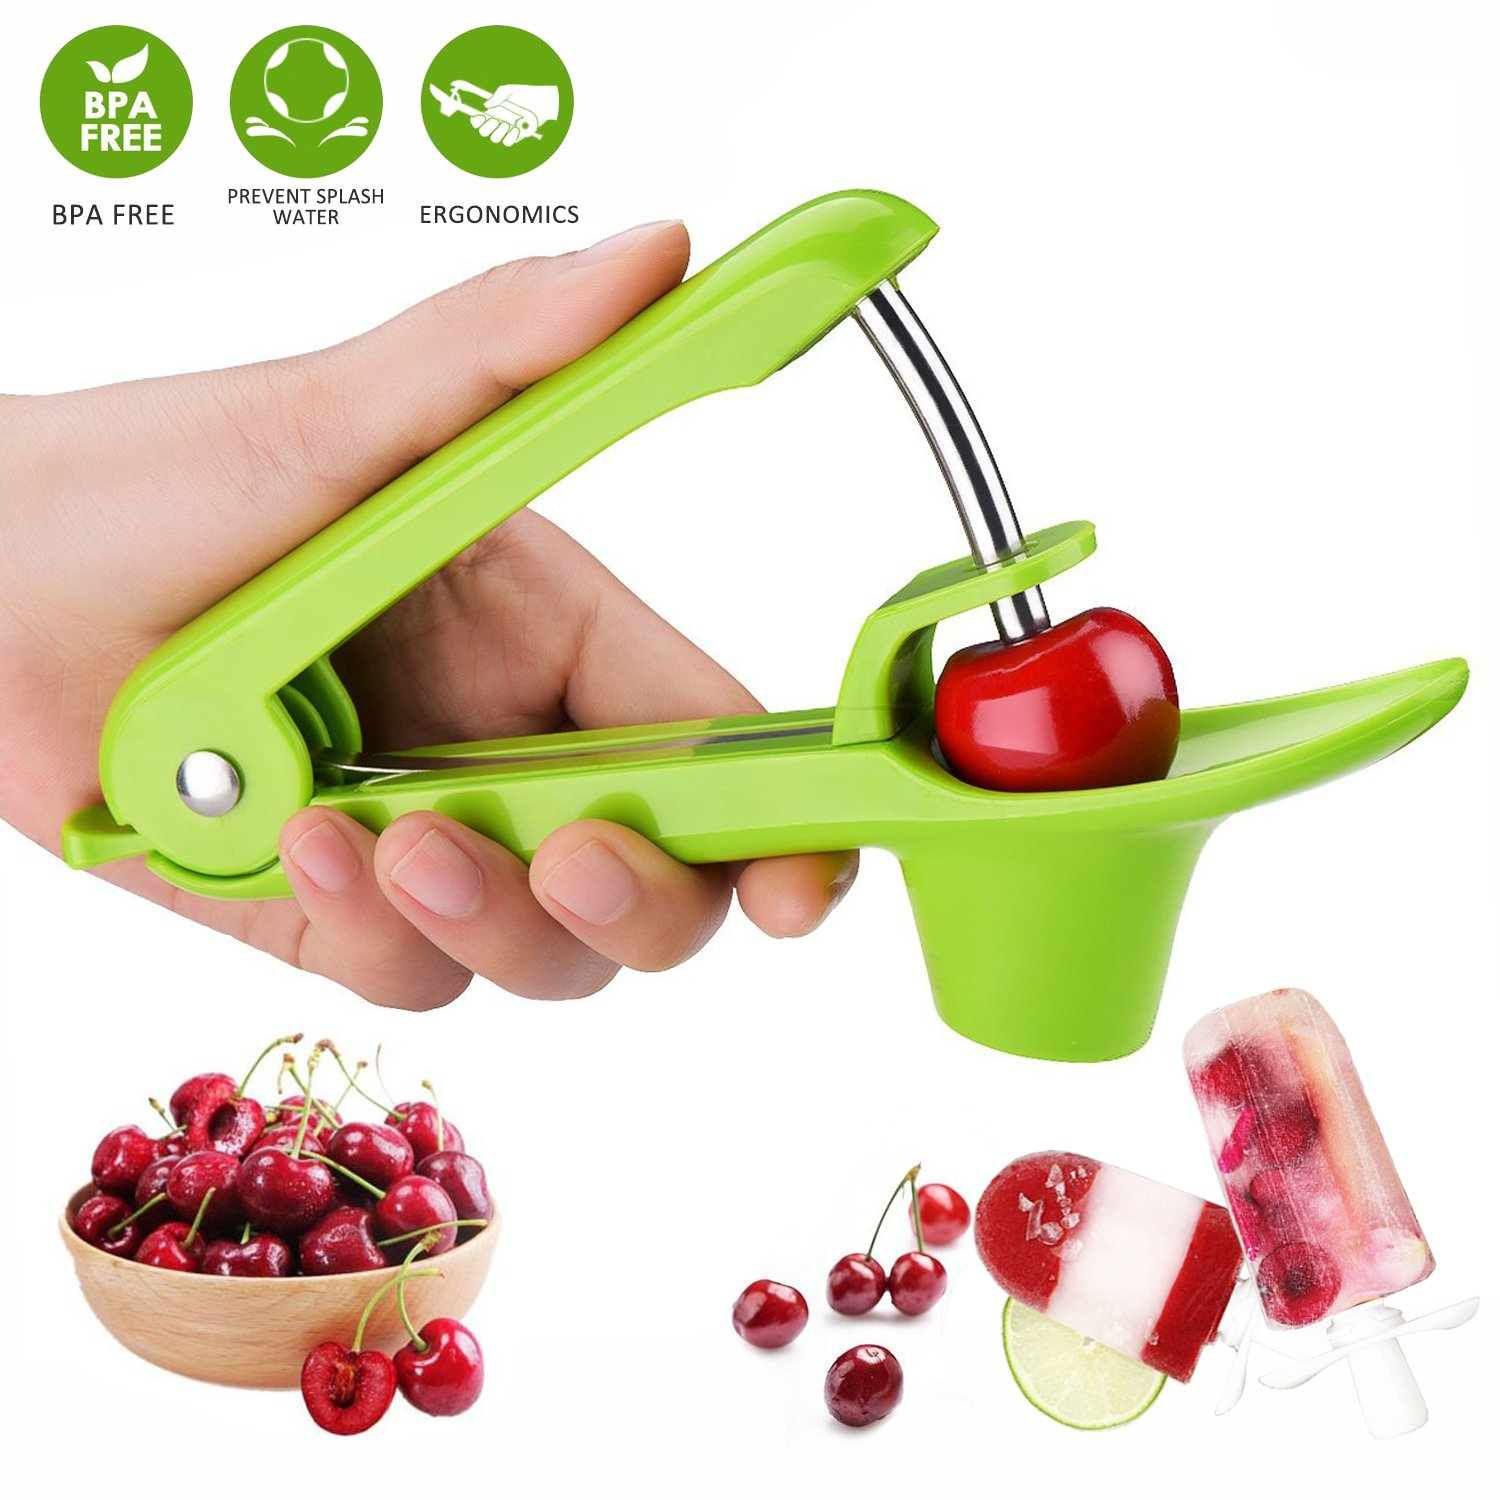 Cherry Pitter, Cherry Stoner, Cherry Destoner, Cherry Seed Remover Tool, Silicone Olive Pitter Quick Easy Squeeze Cherry Corer with Stainless Rod Cherry Pip Remover for Cake Baking Cooking Jam Jelly -JaLL